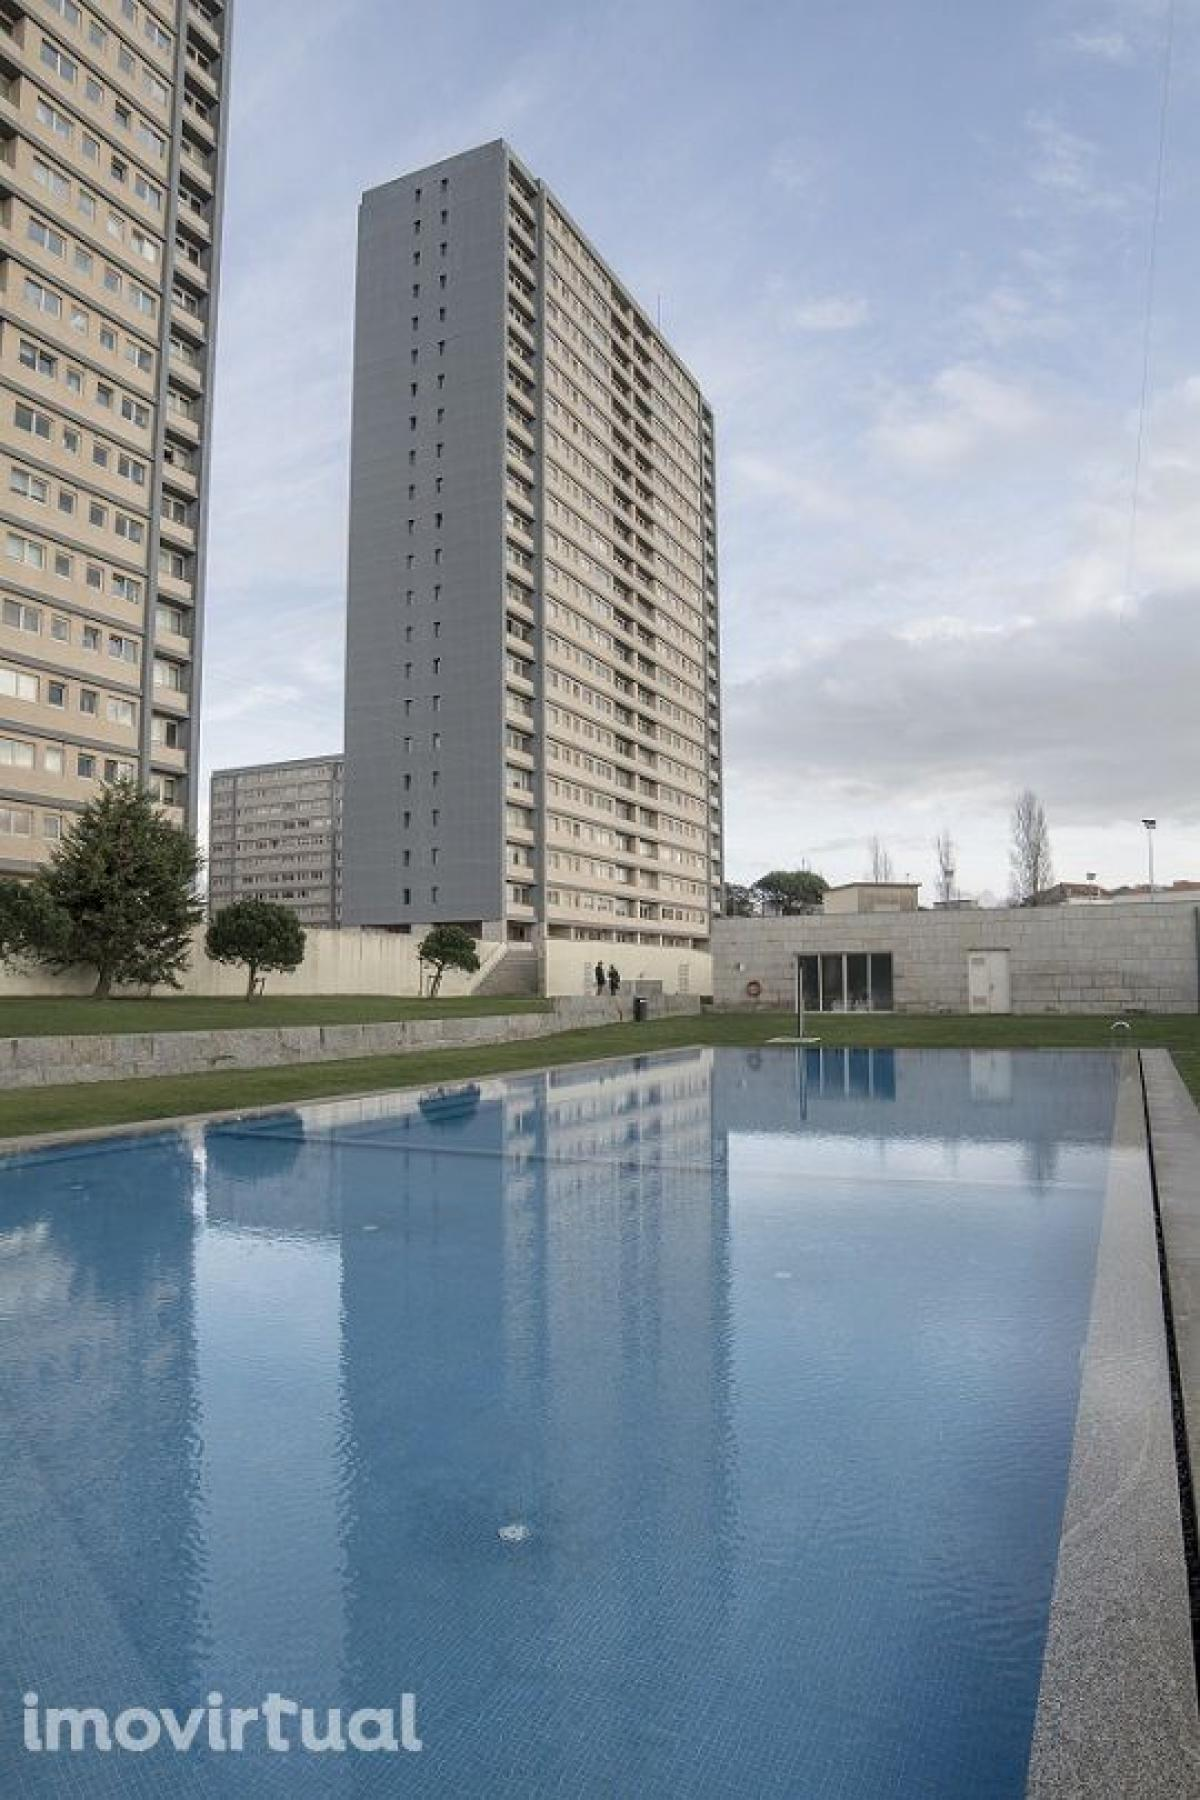 Property listed For Rent in Porto, Portugal